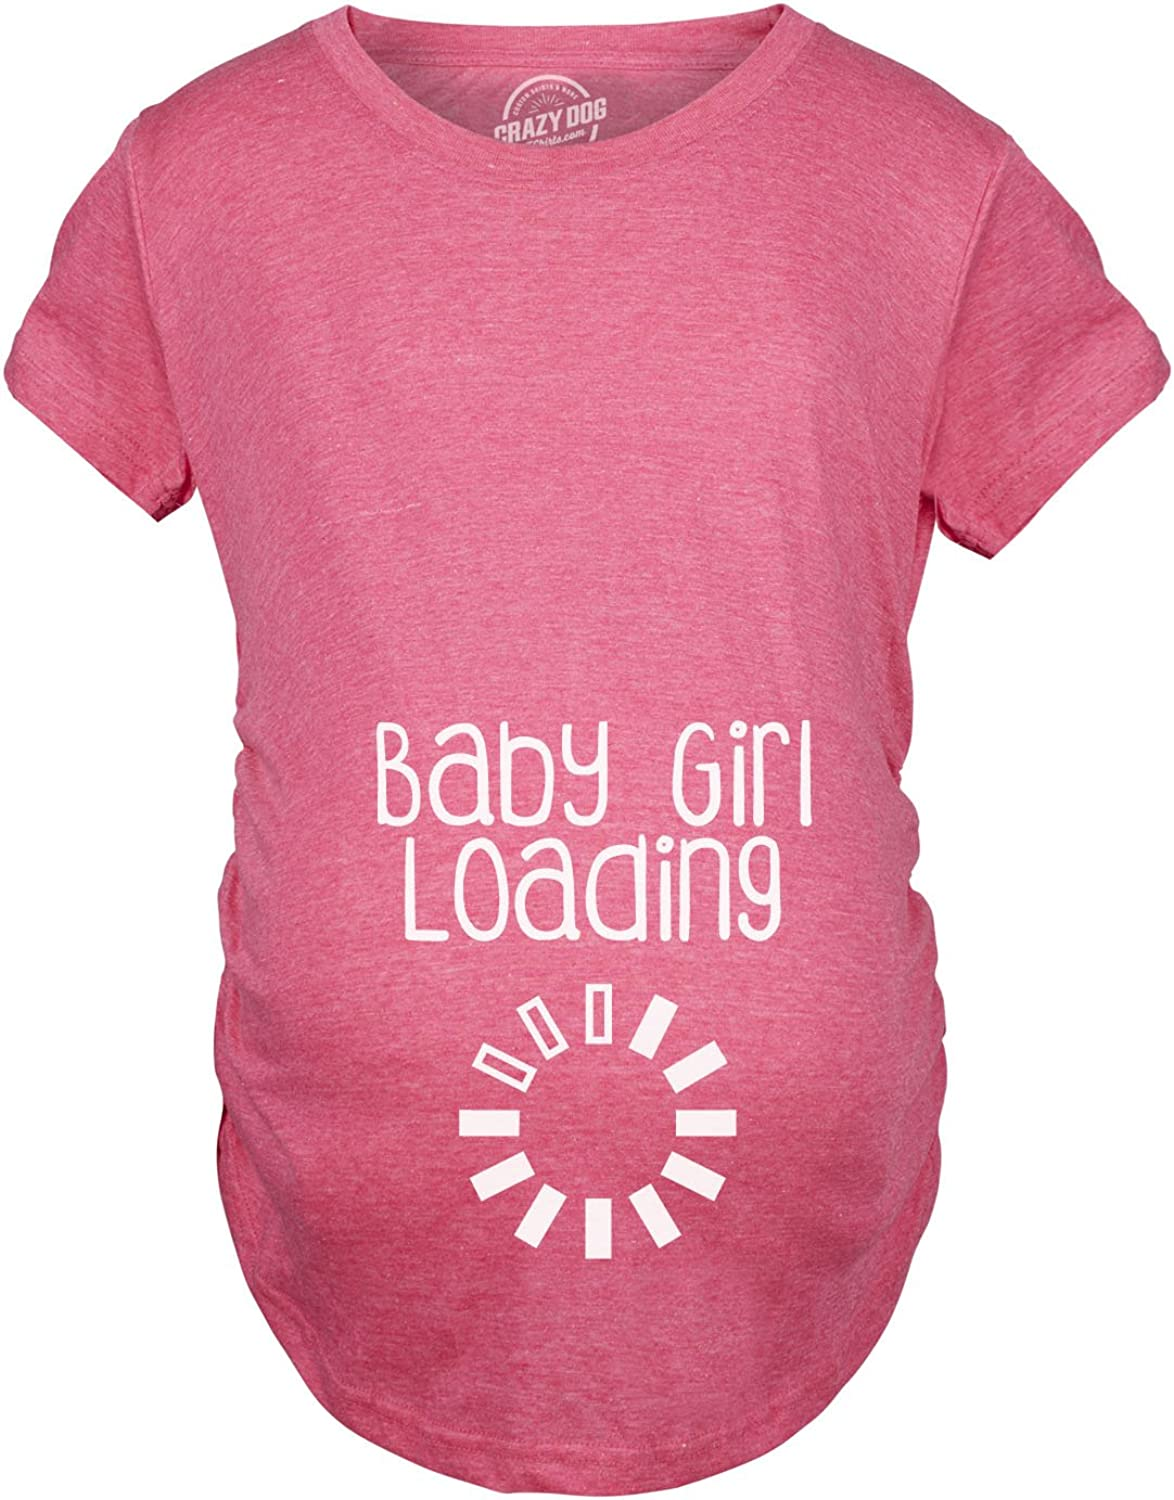 Maternity Baby Girl Loading T Shirt Funny Pregnancy Announcement Reveal Cool Tee